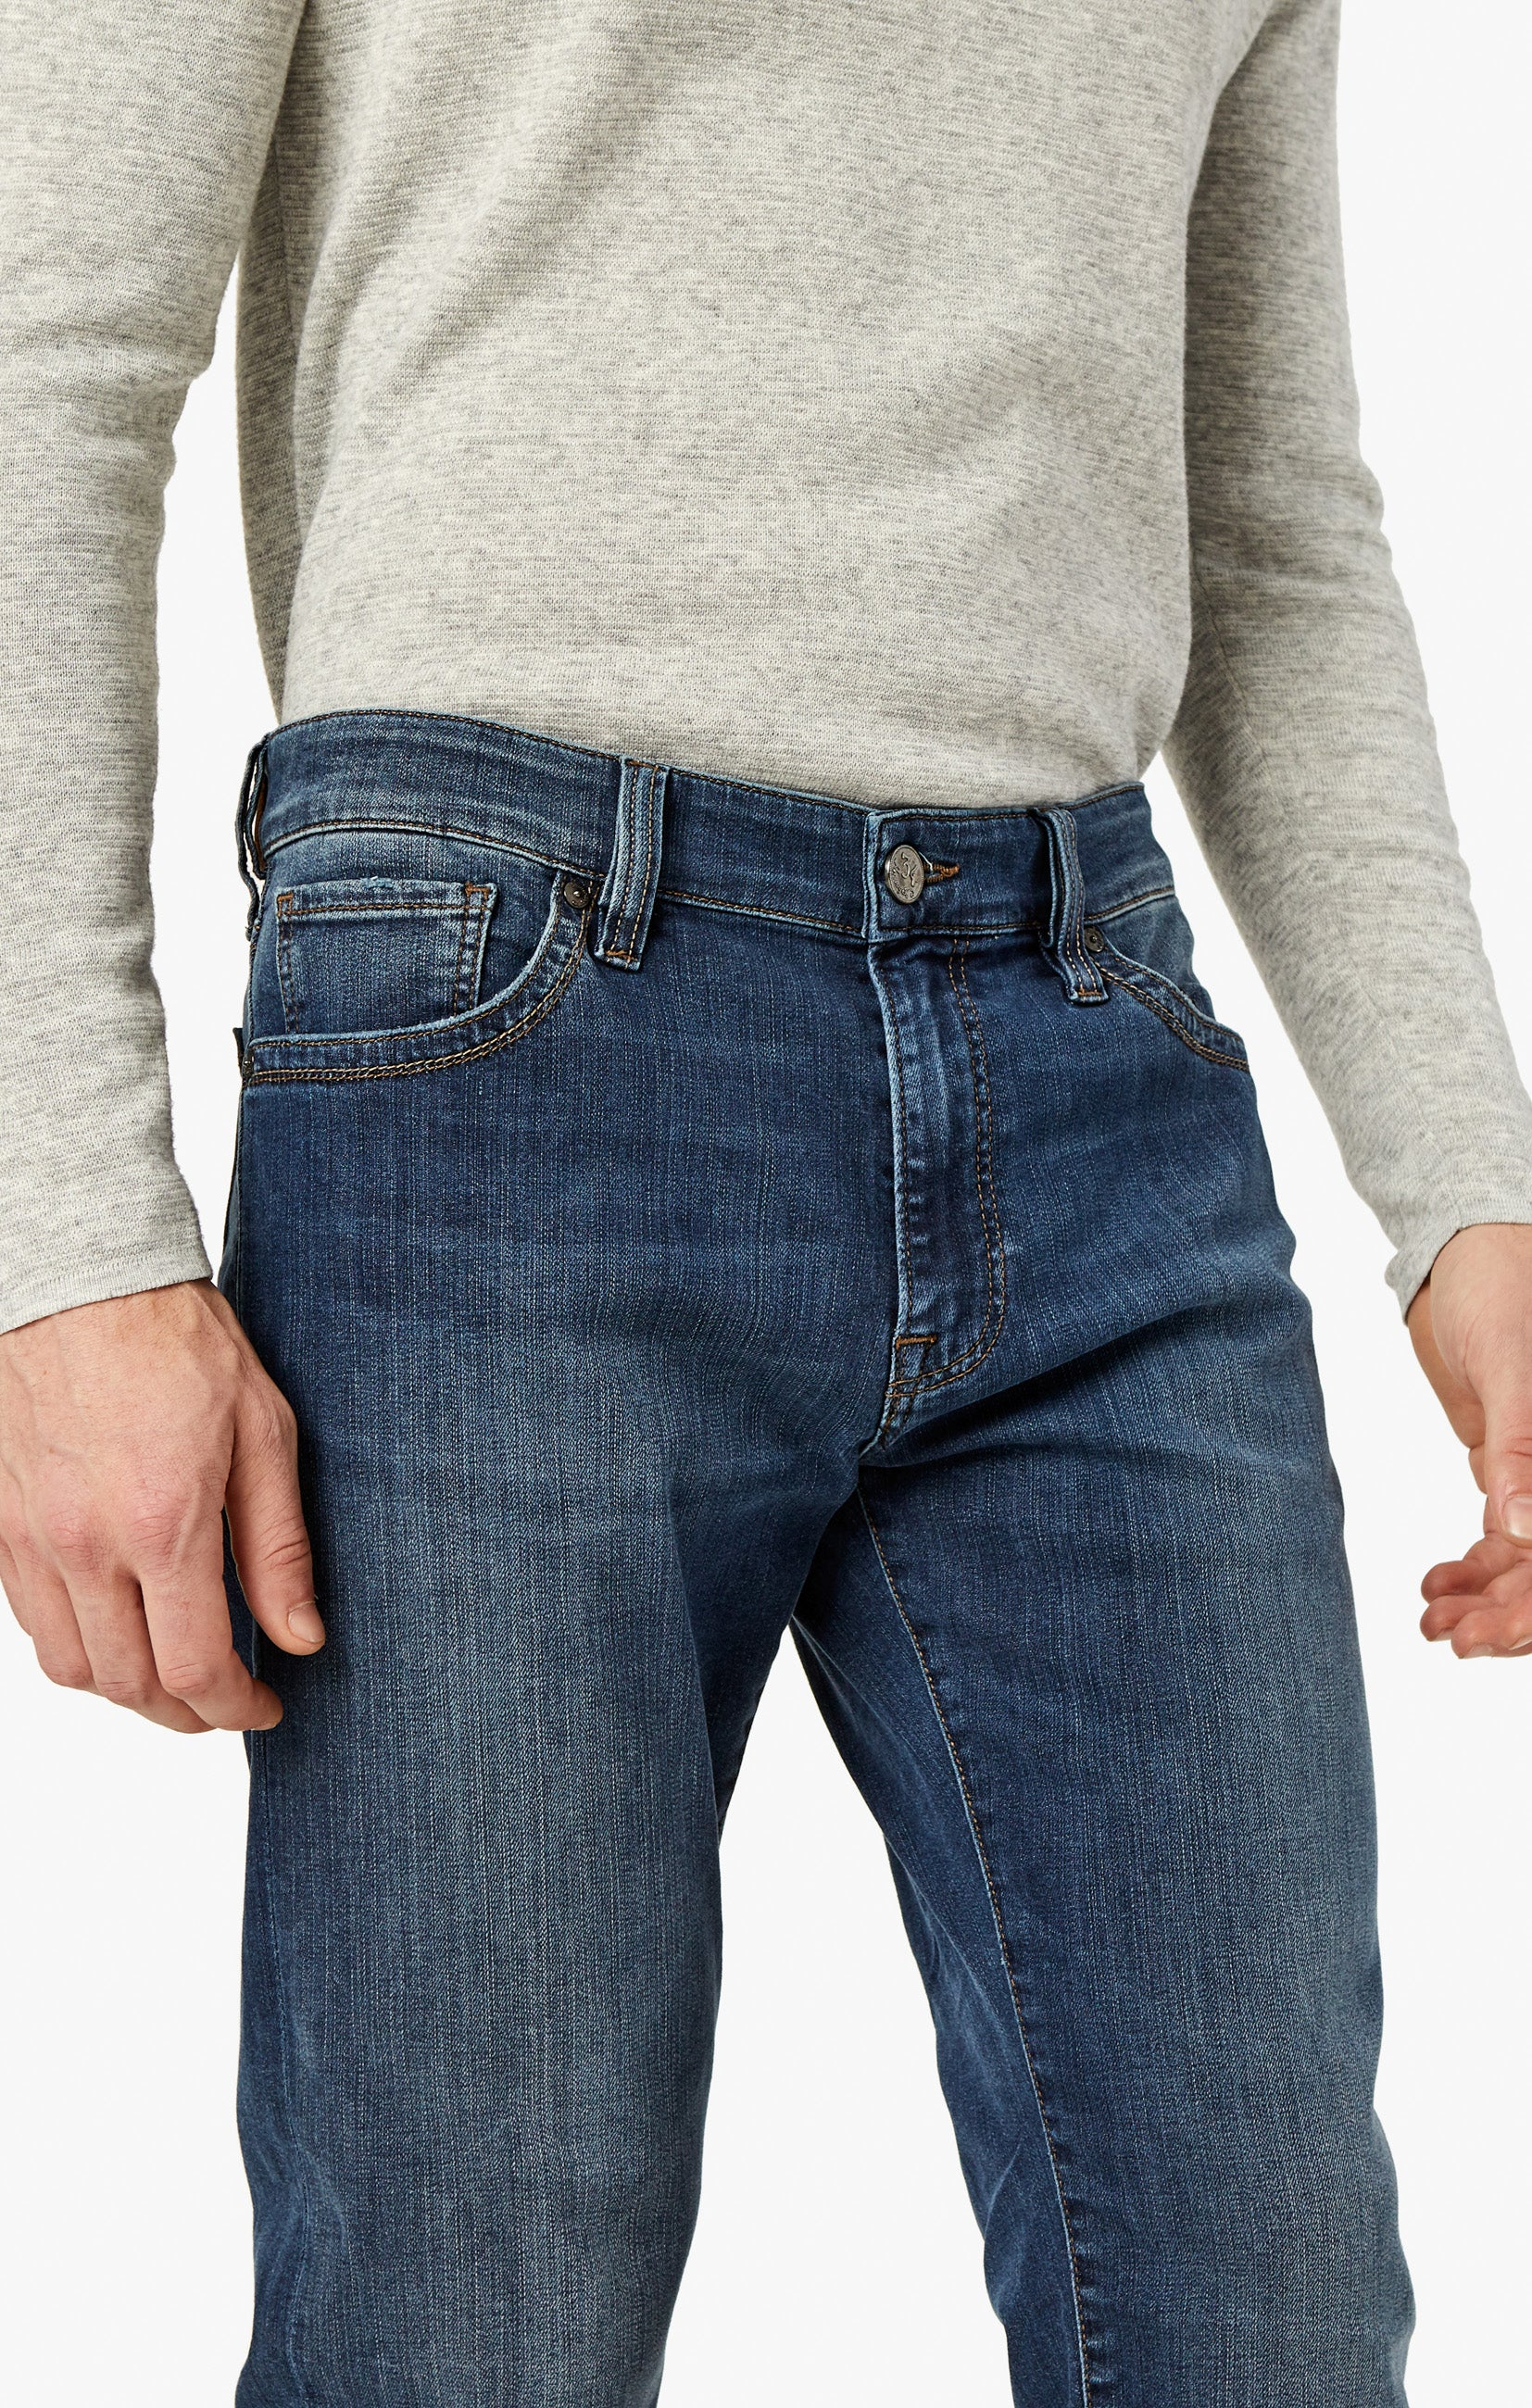 Courage Straight Leg Jeans In Mid Vintage Image 9